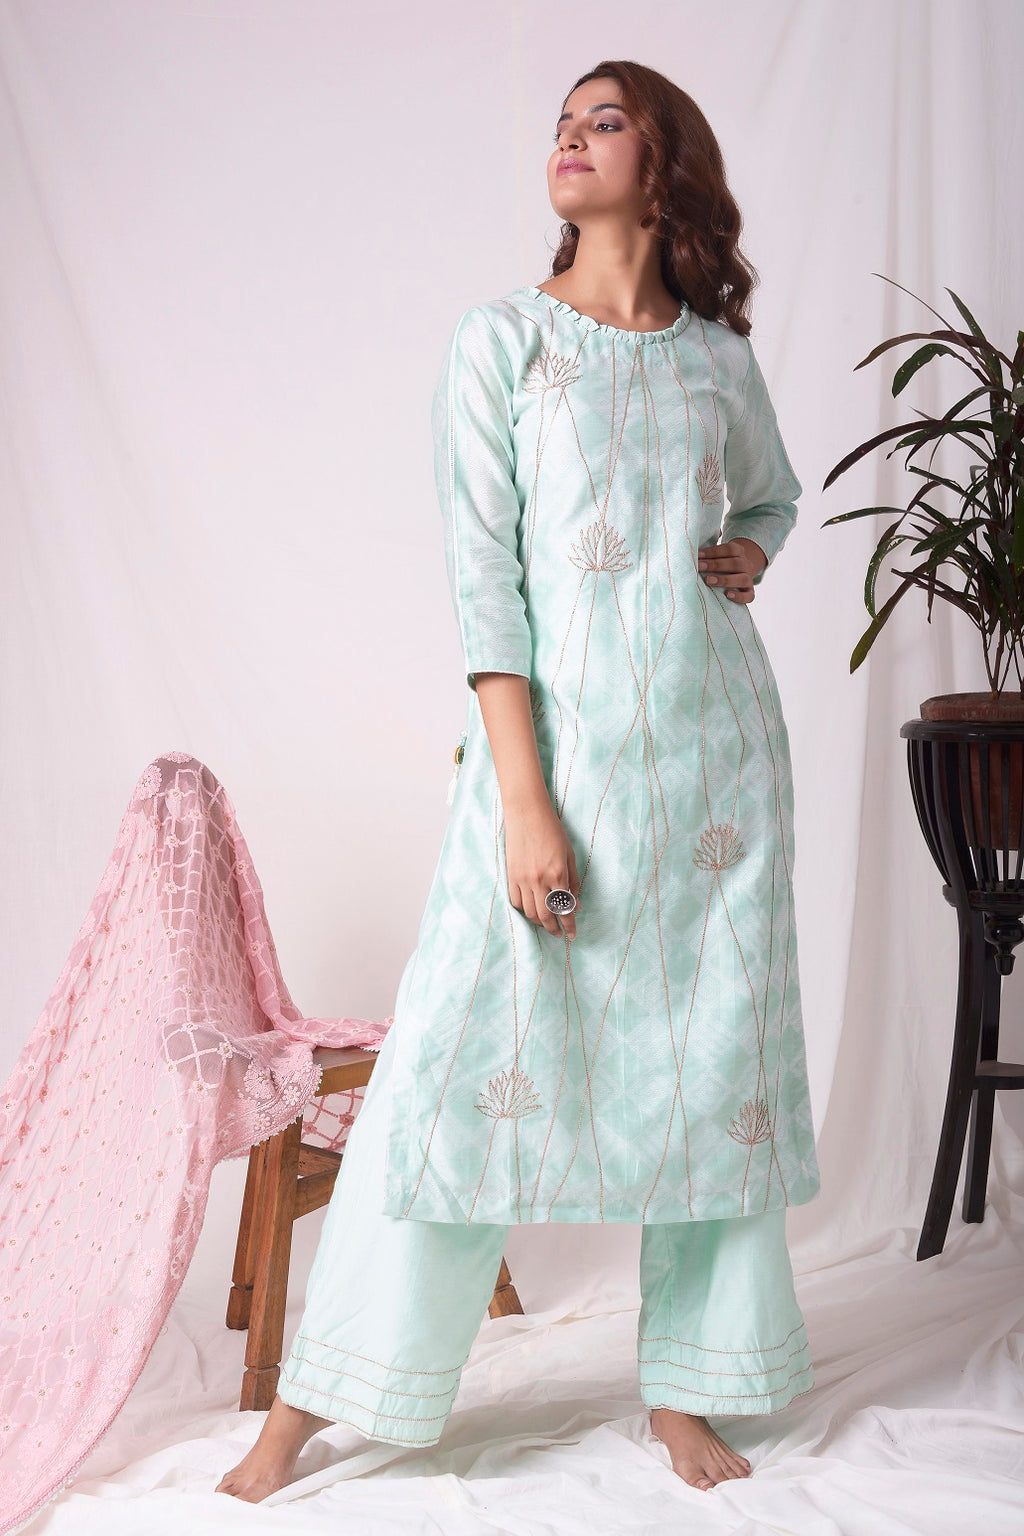 Blue Chanderi With Patti Work Suit Online in USA-full view-3